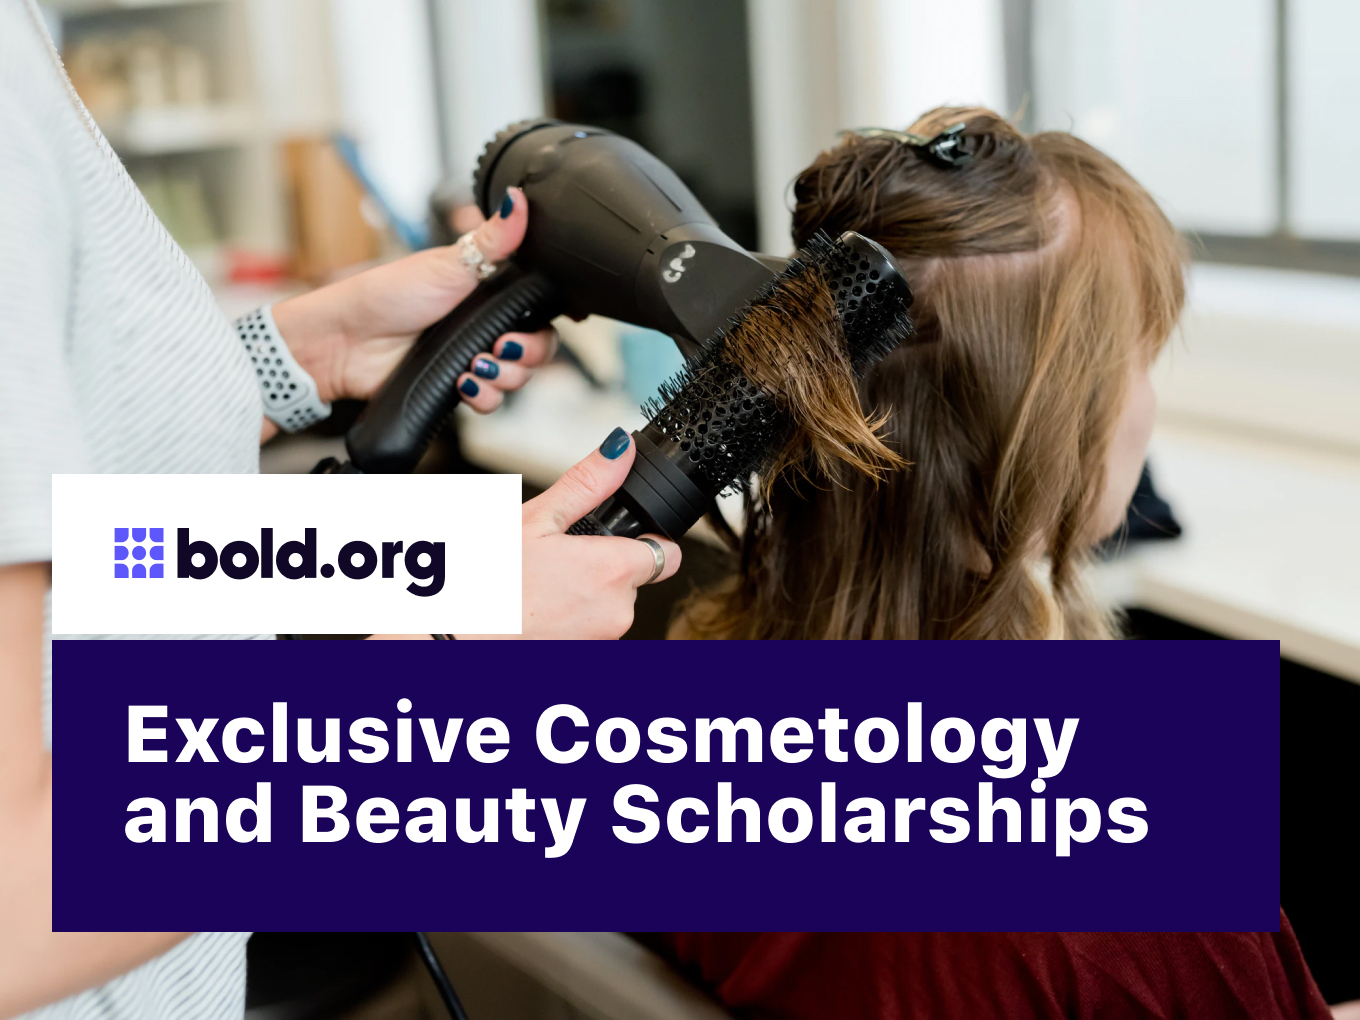 Exclusive Cosmetology Scholarships with Upcoming Deadlines